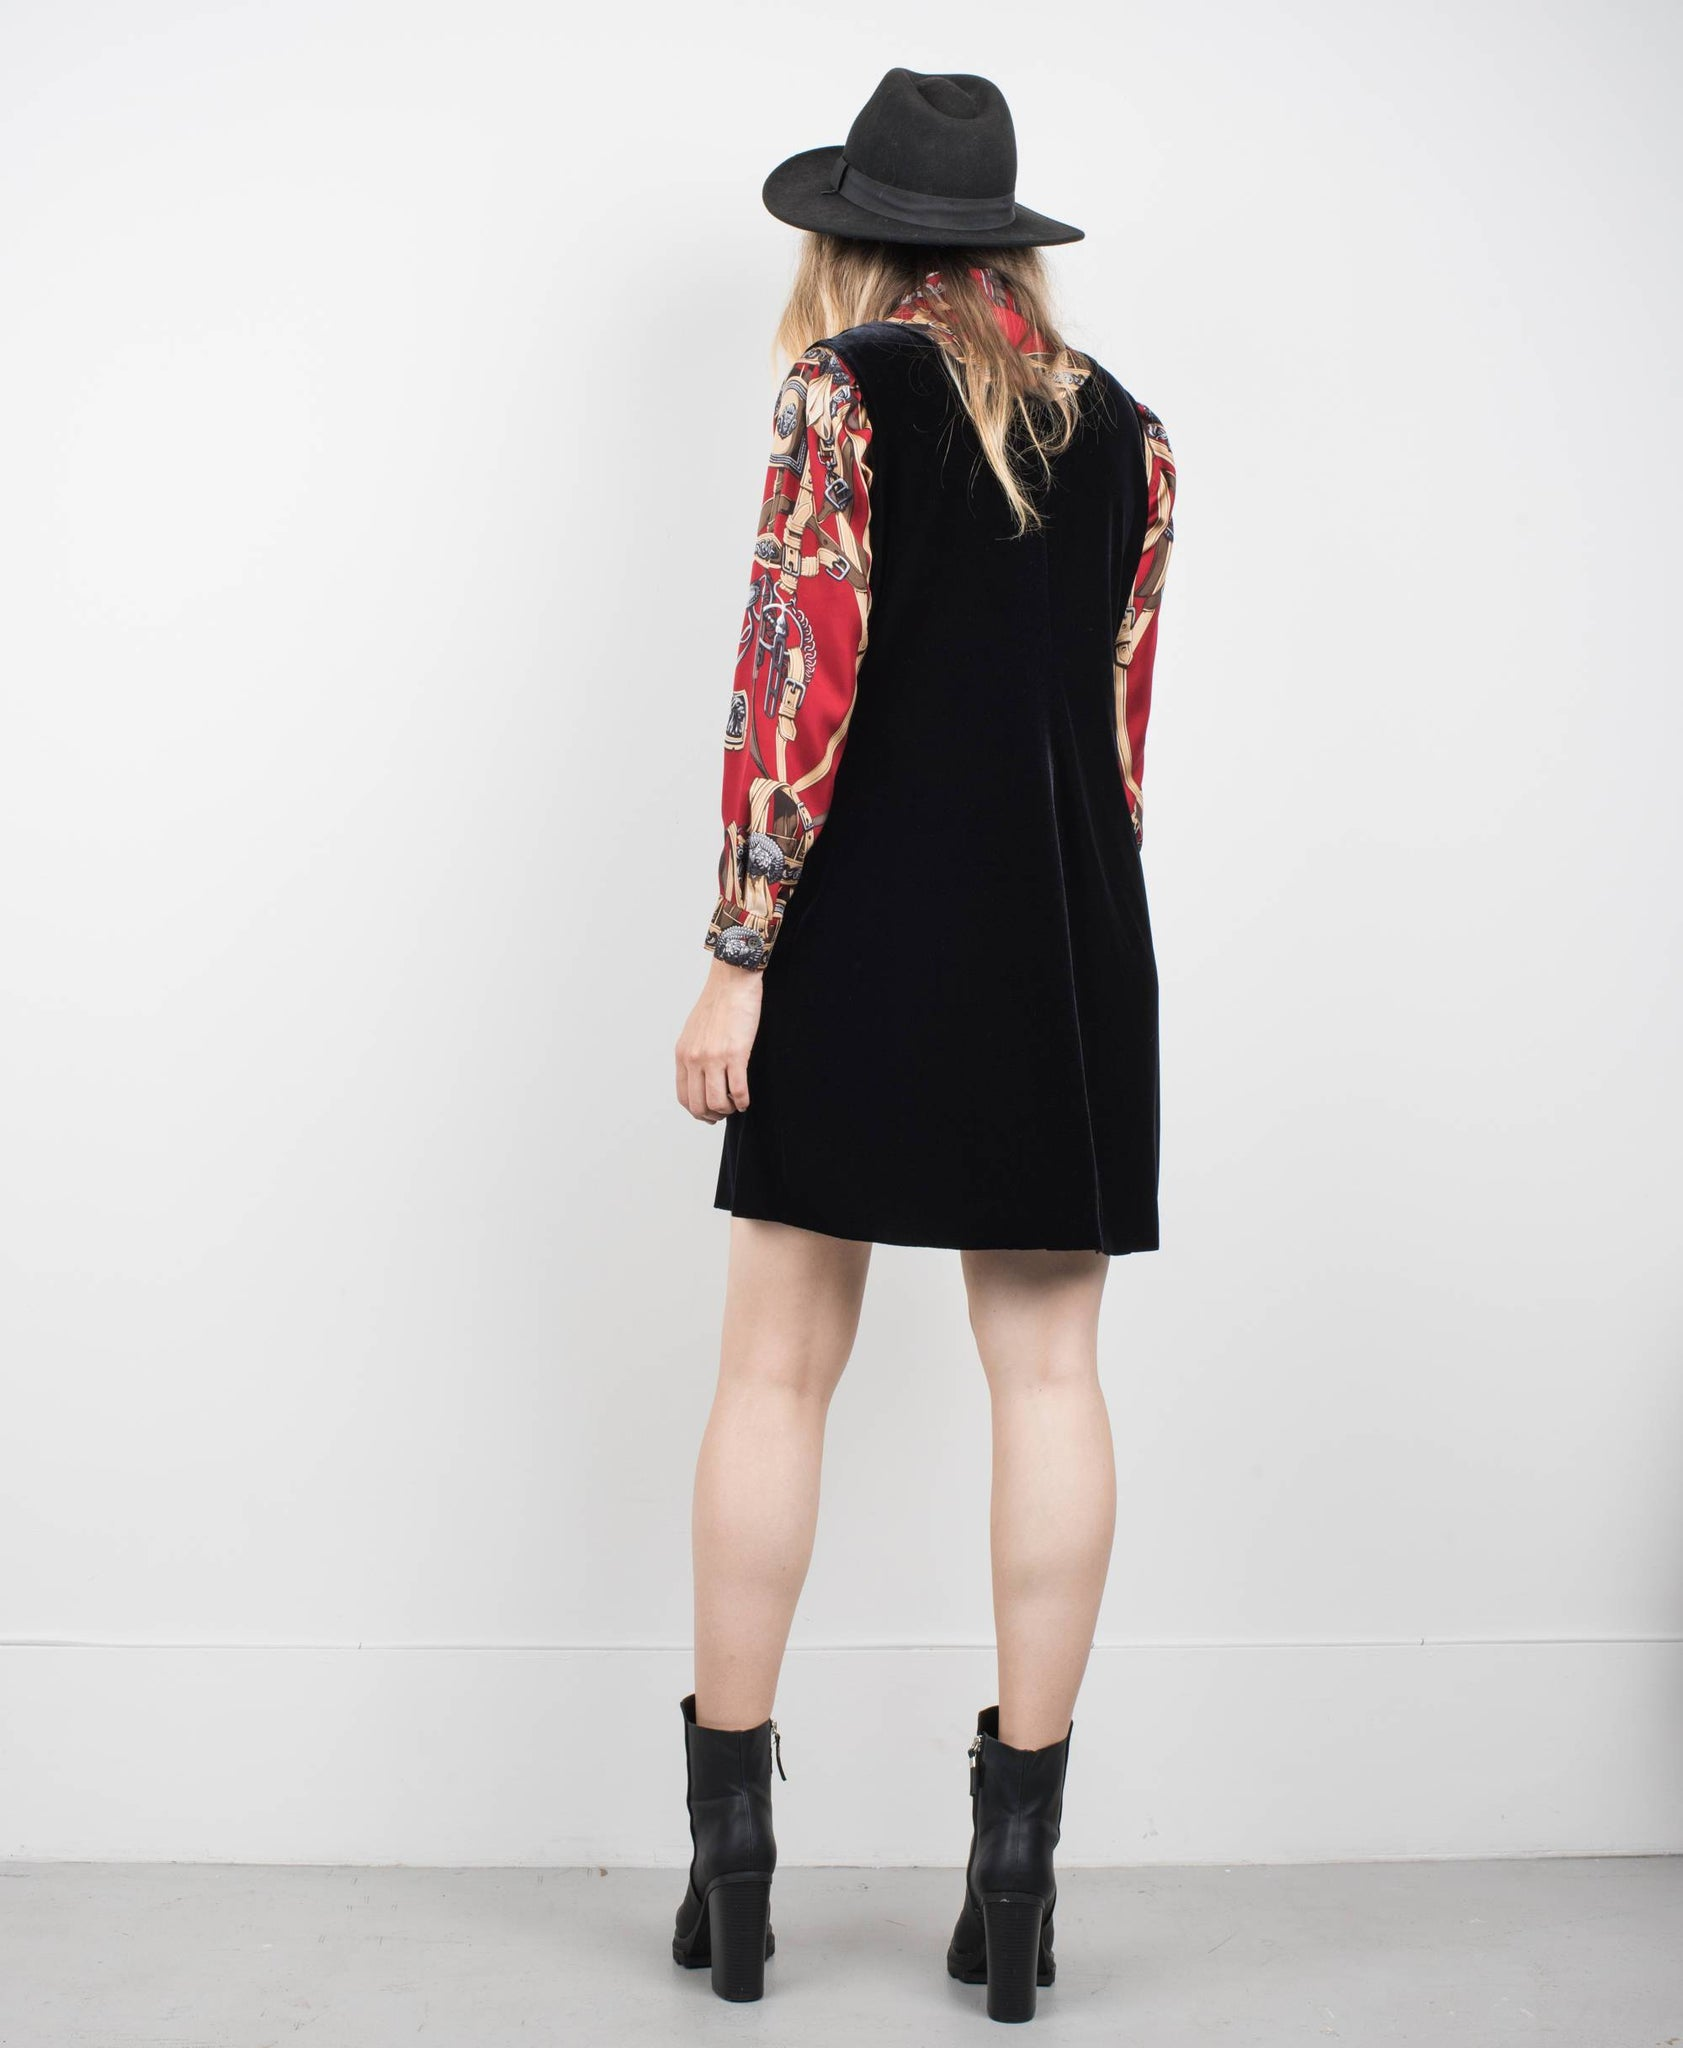 Vintage Obsidian Sleeveless Velvet Dress / S/M - Closed Caption